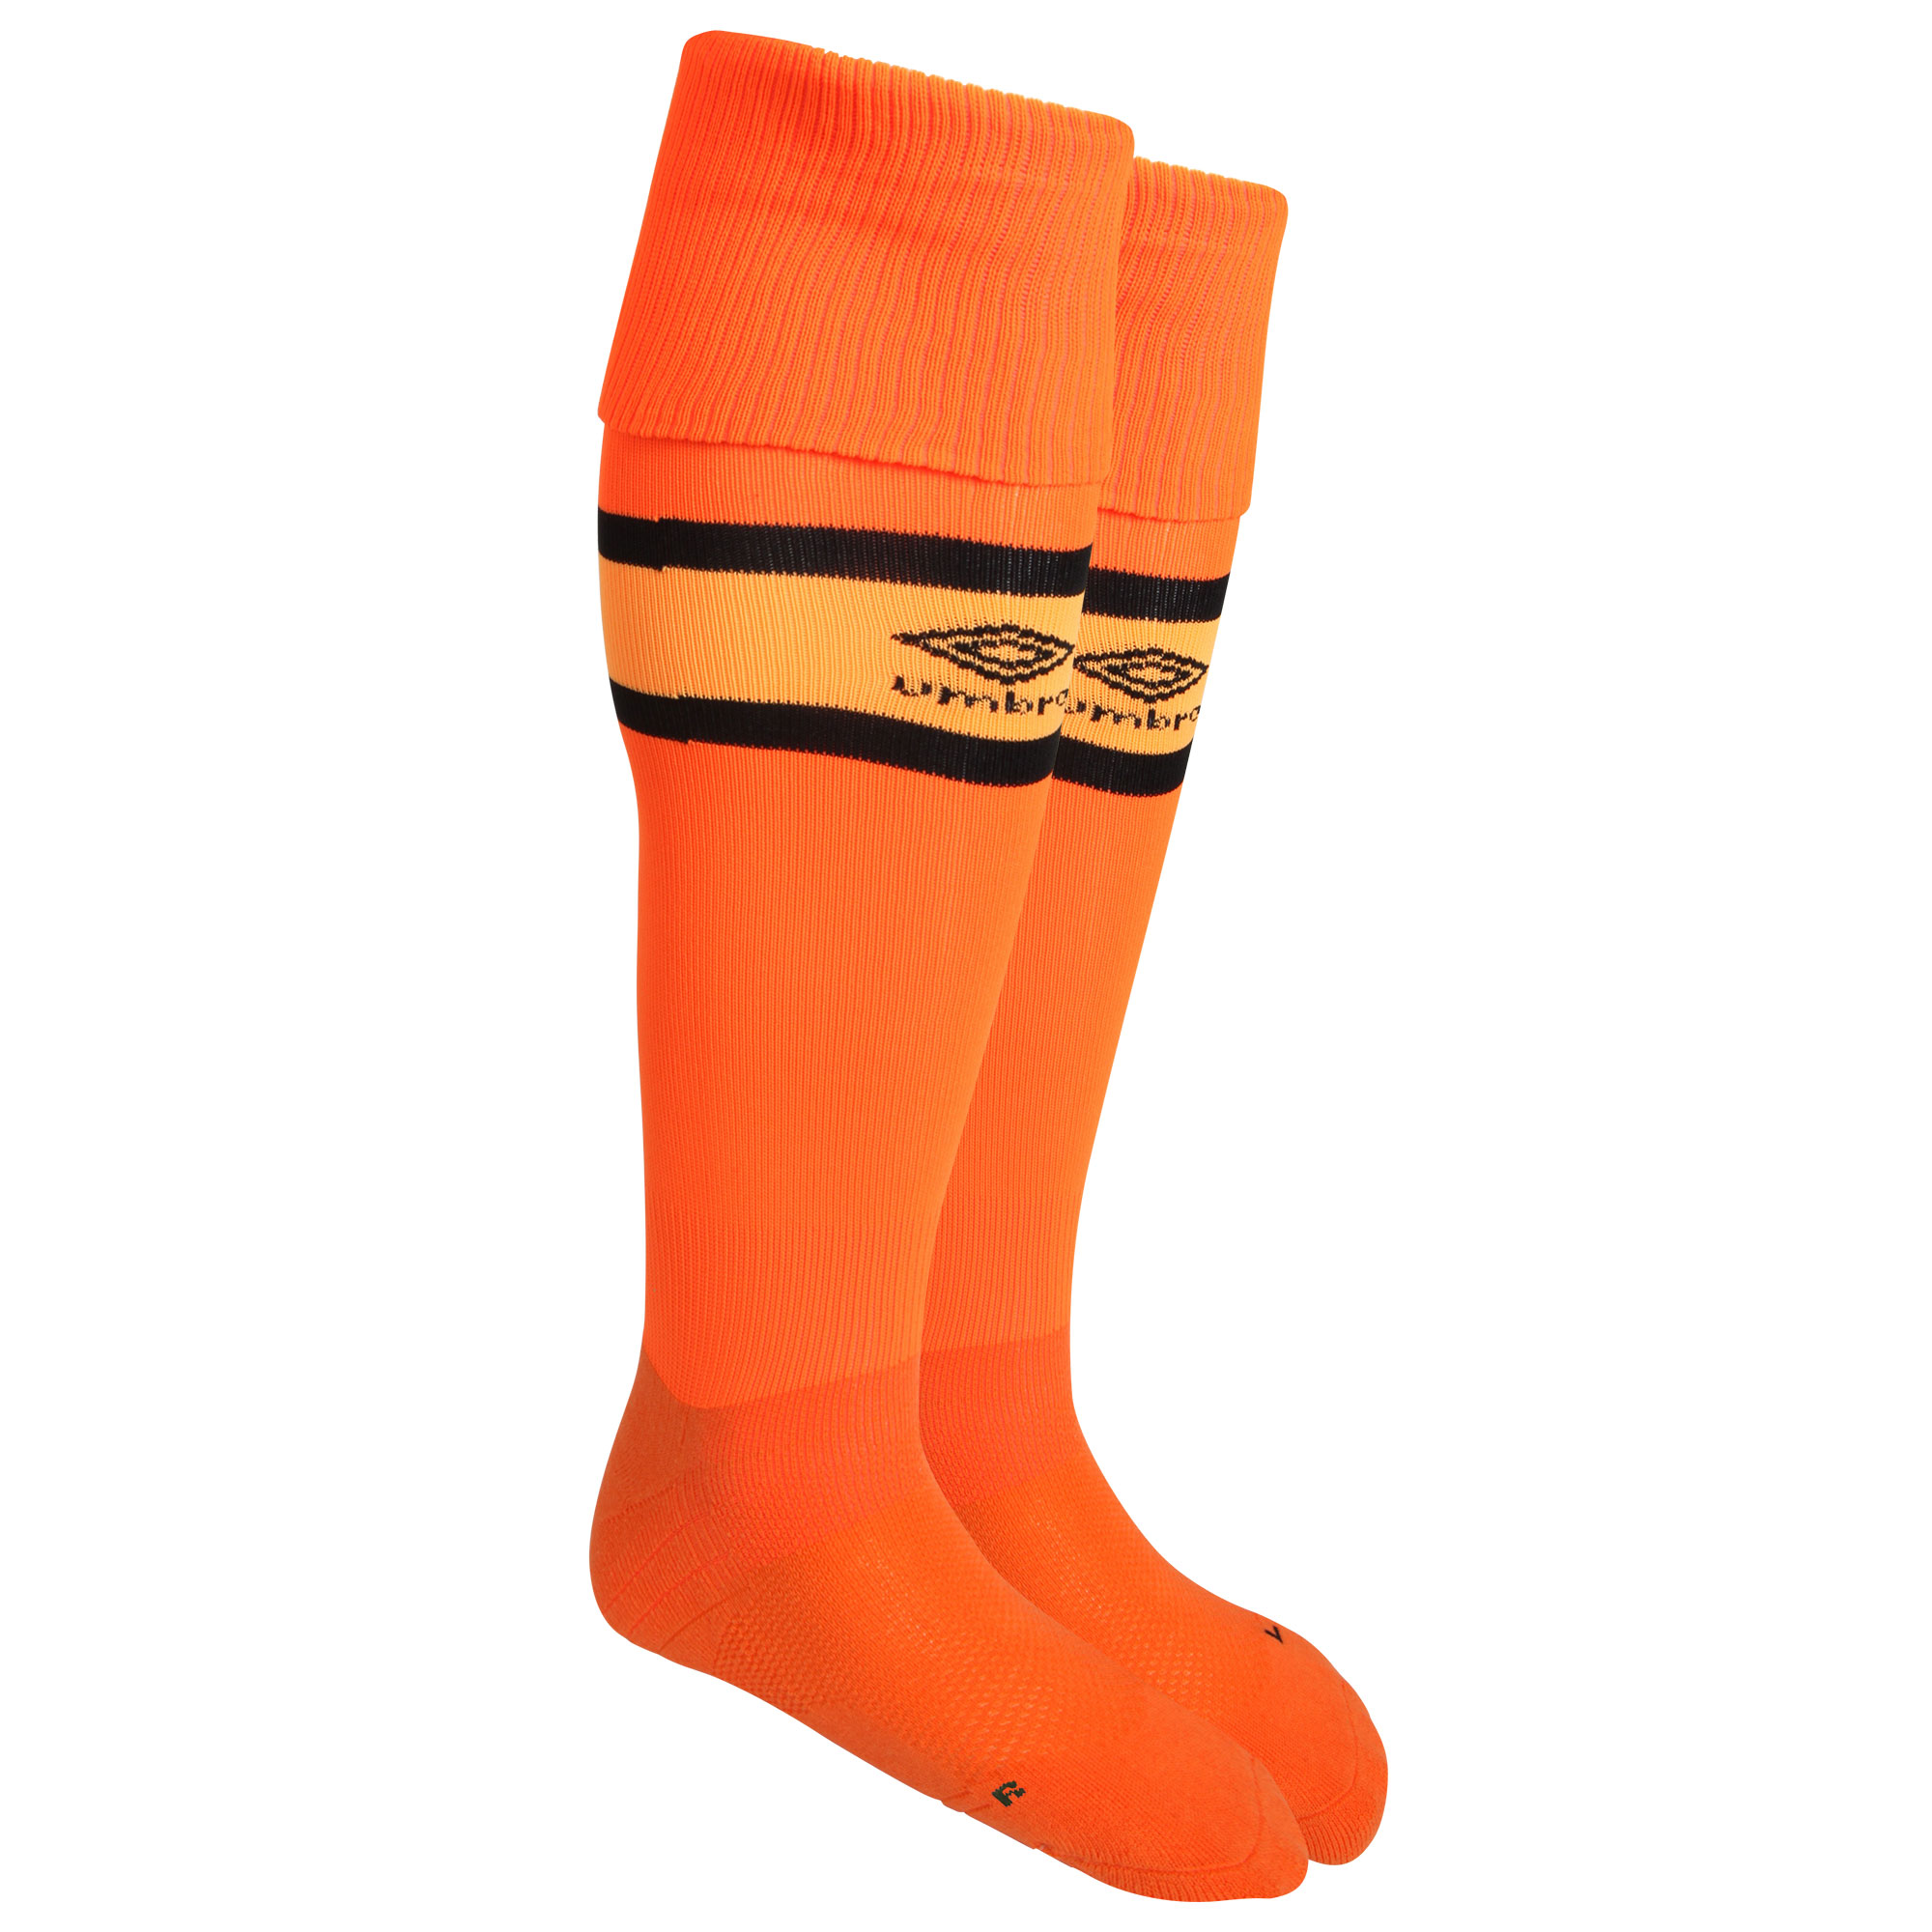 2016/17 ADULTS HOME G/K SOCKS